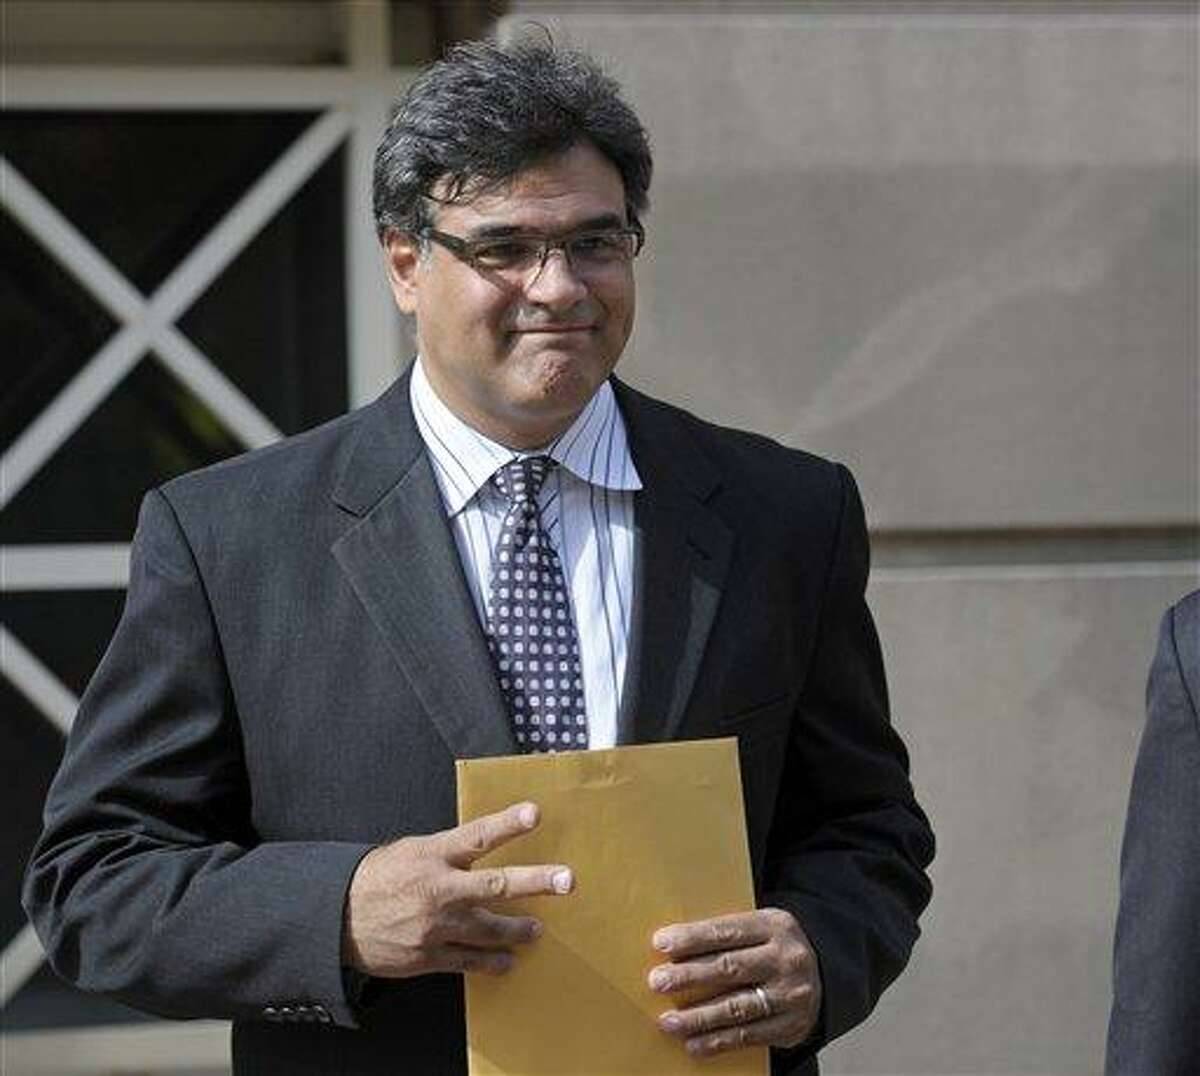 Former CIA officer John Kiriakou leaves U.S. District Courthouse in Alexandria, Va., in October 2012. Kiriakou was sentenced Friday to more than two years in prison by a federal judge who rejected arguments that he was acting as a whistleblower when he leaked a covert officer's name to a reporter. Associated Press file photo